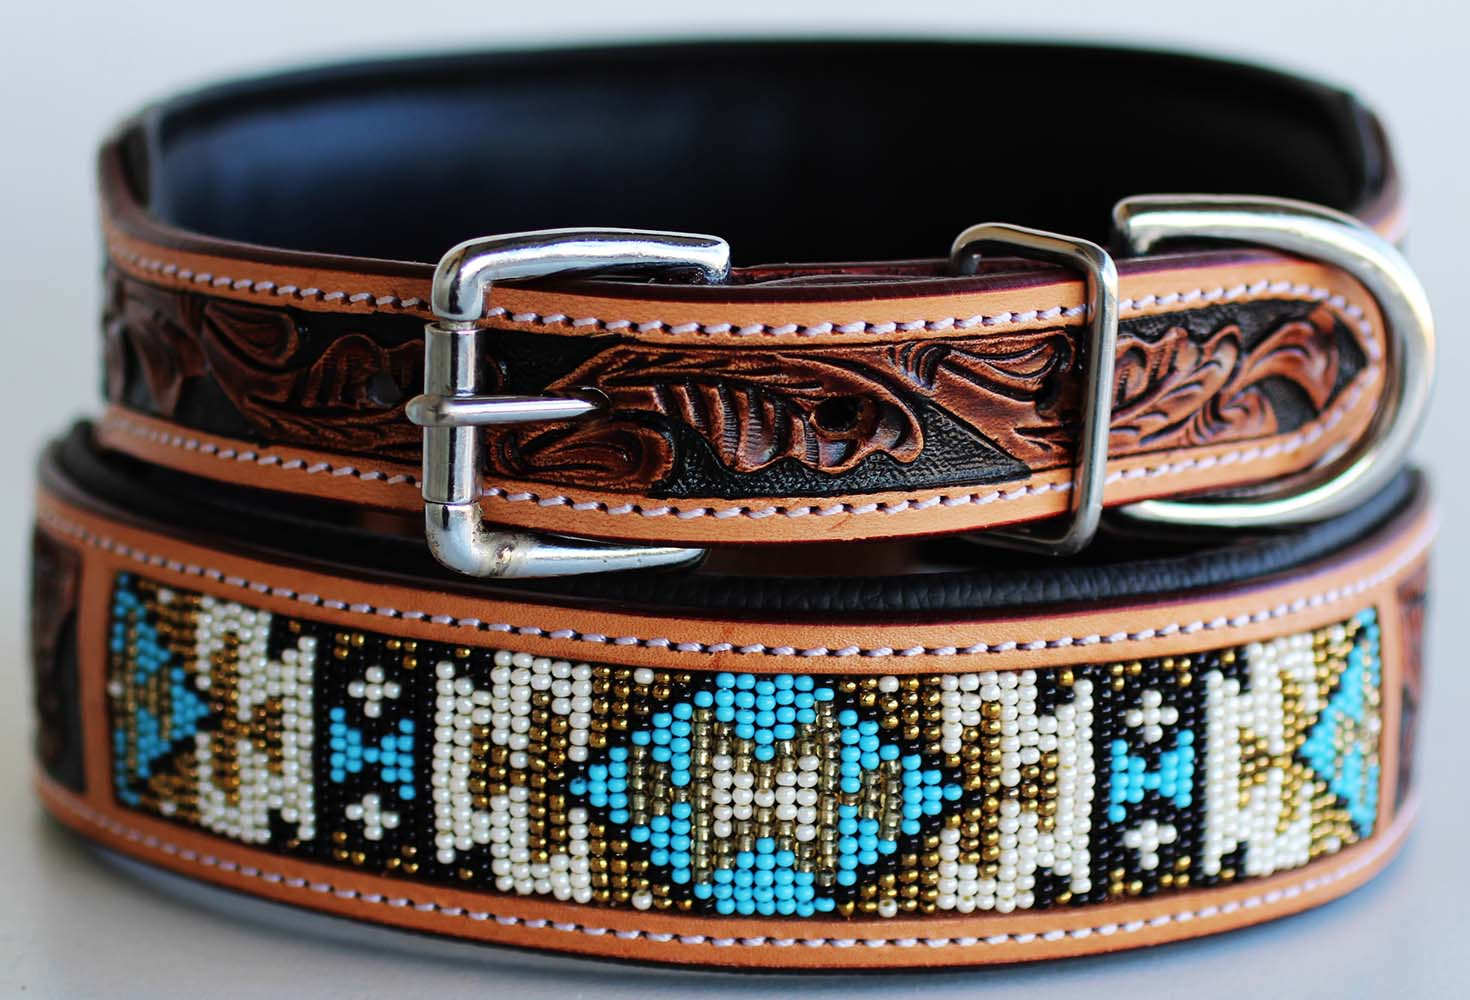 Dog-Puppy-Collar-Cow-Leather-Adjustable-Padded-Canine-6063